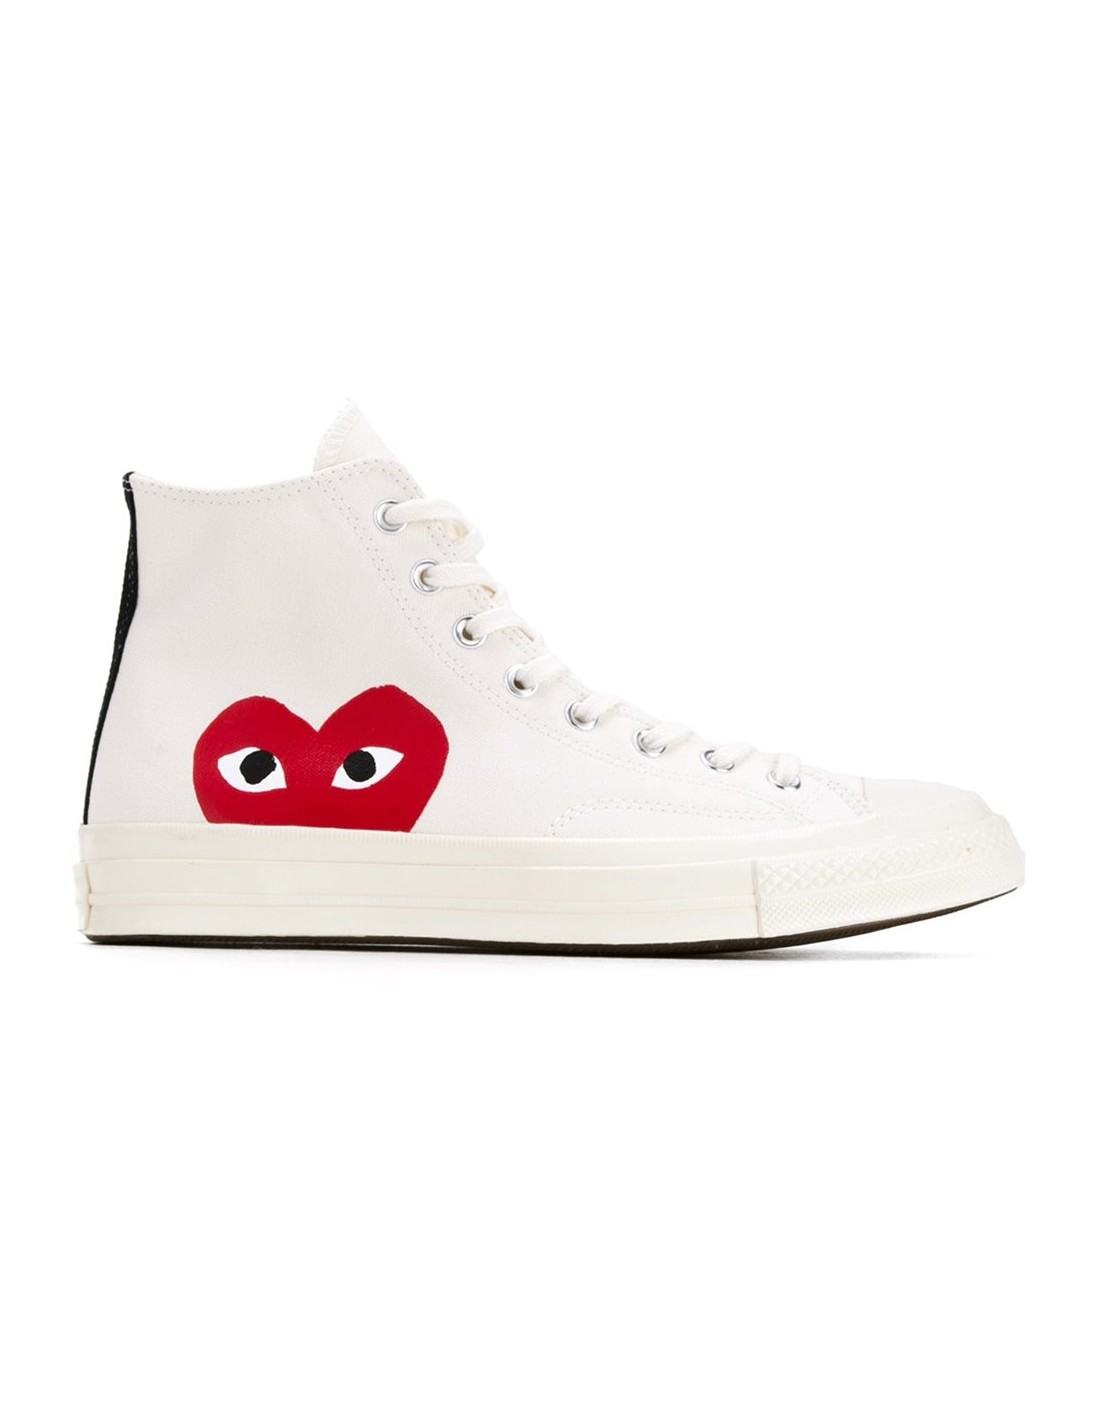 coupon codes exclusive shoes outlet for sale CDG PLAY X CONVERSE MONTANTES MONO COEUR - ÉCRU